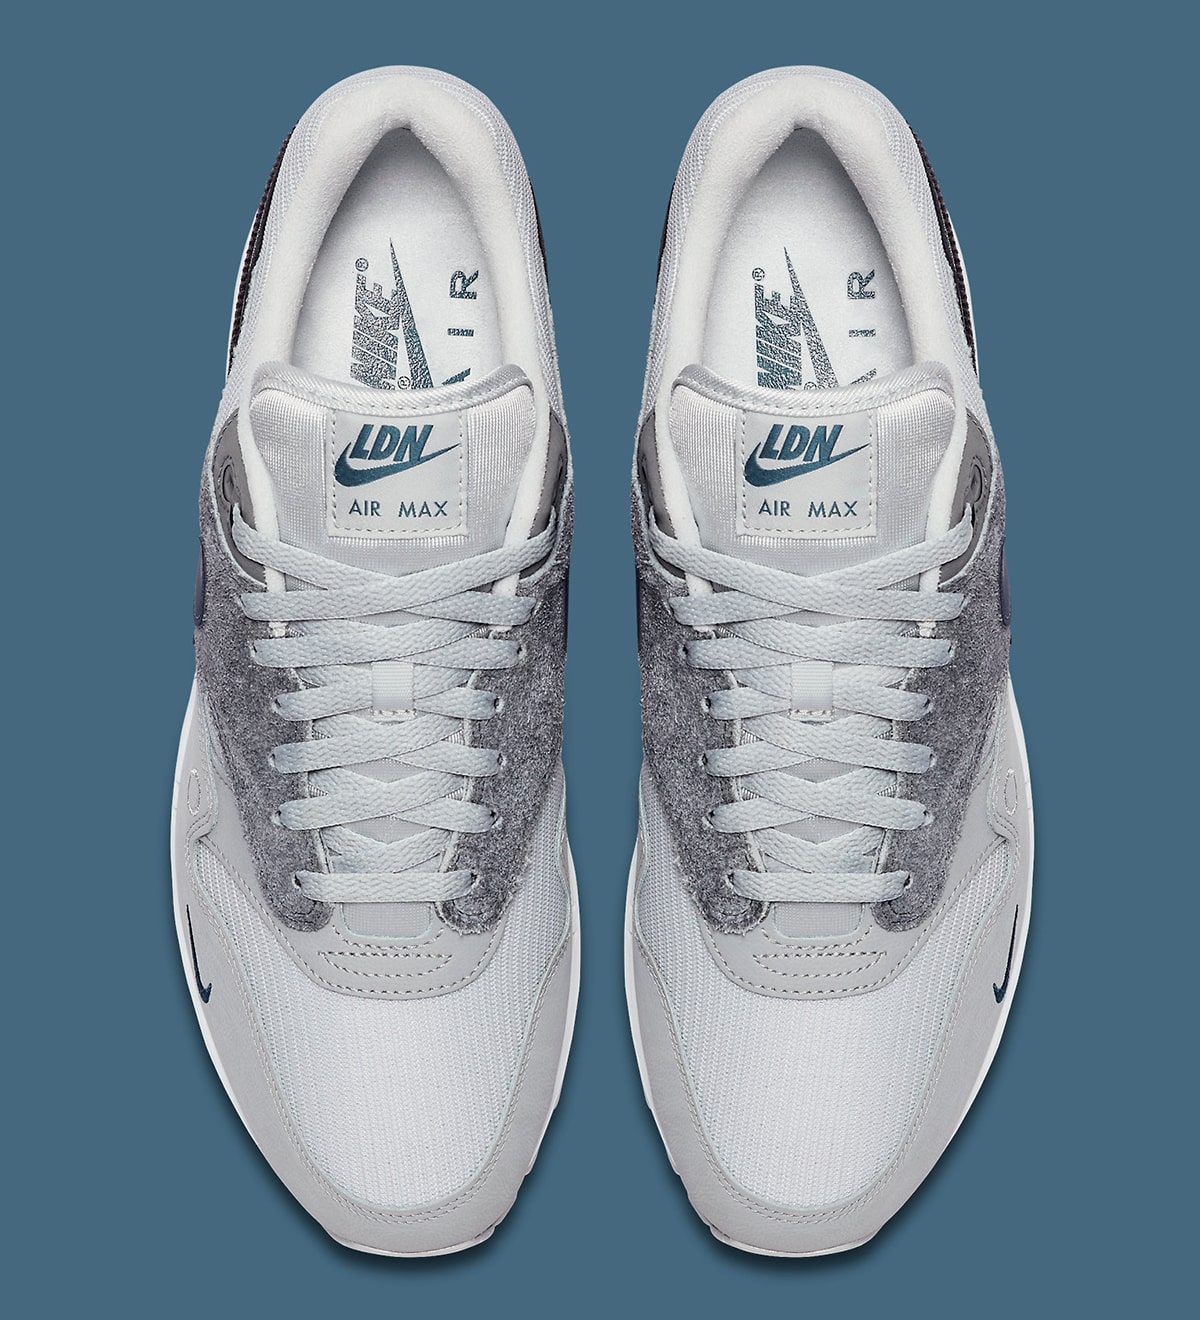 Where To Buy The Nike Air Max 1 London Amsterdam City Pack